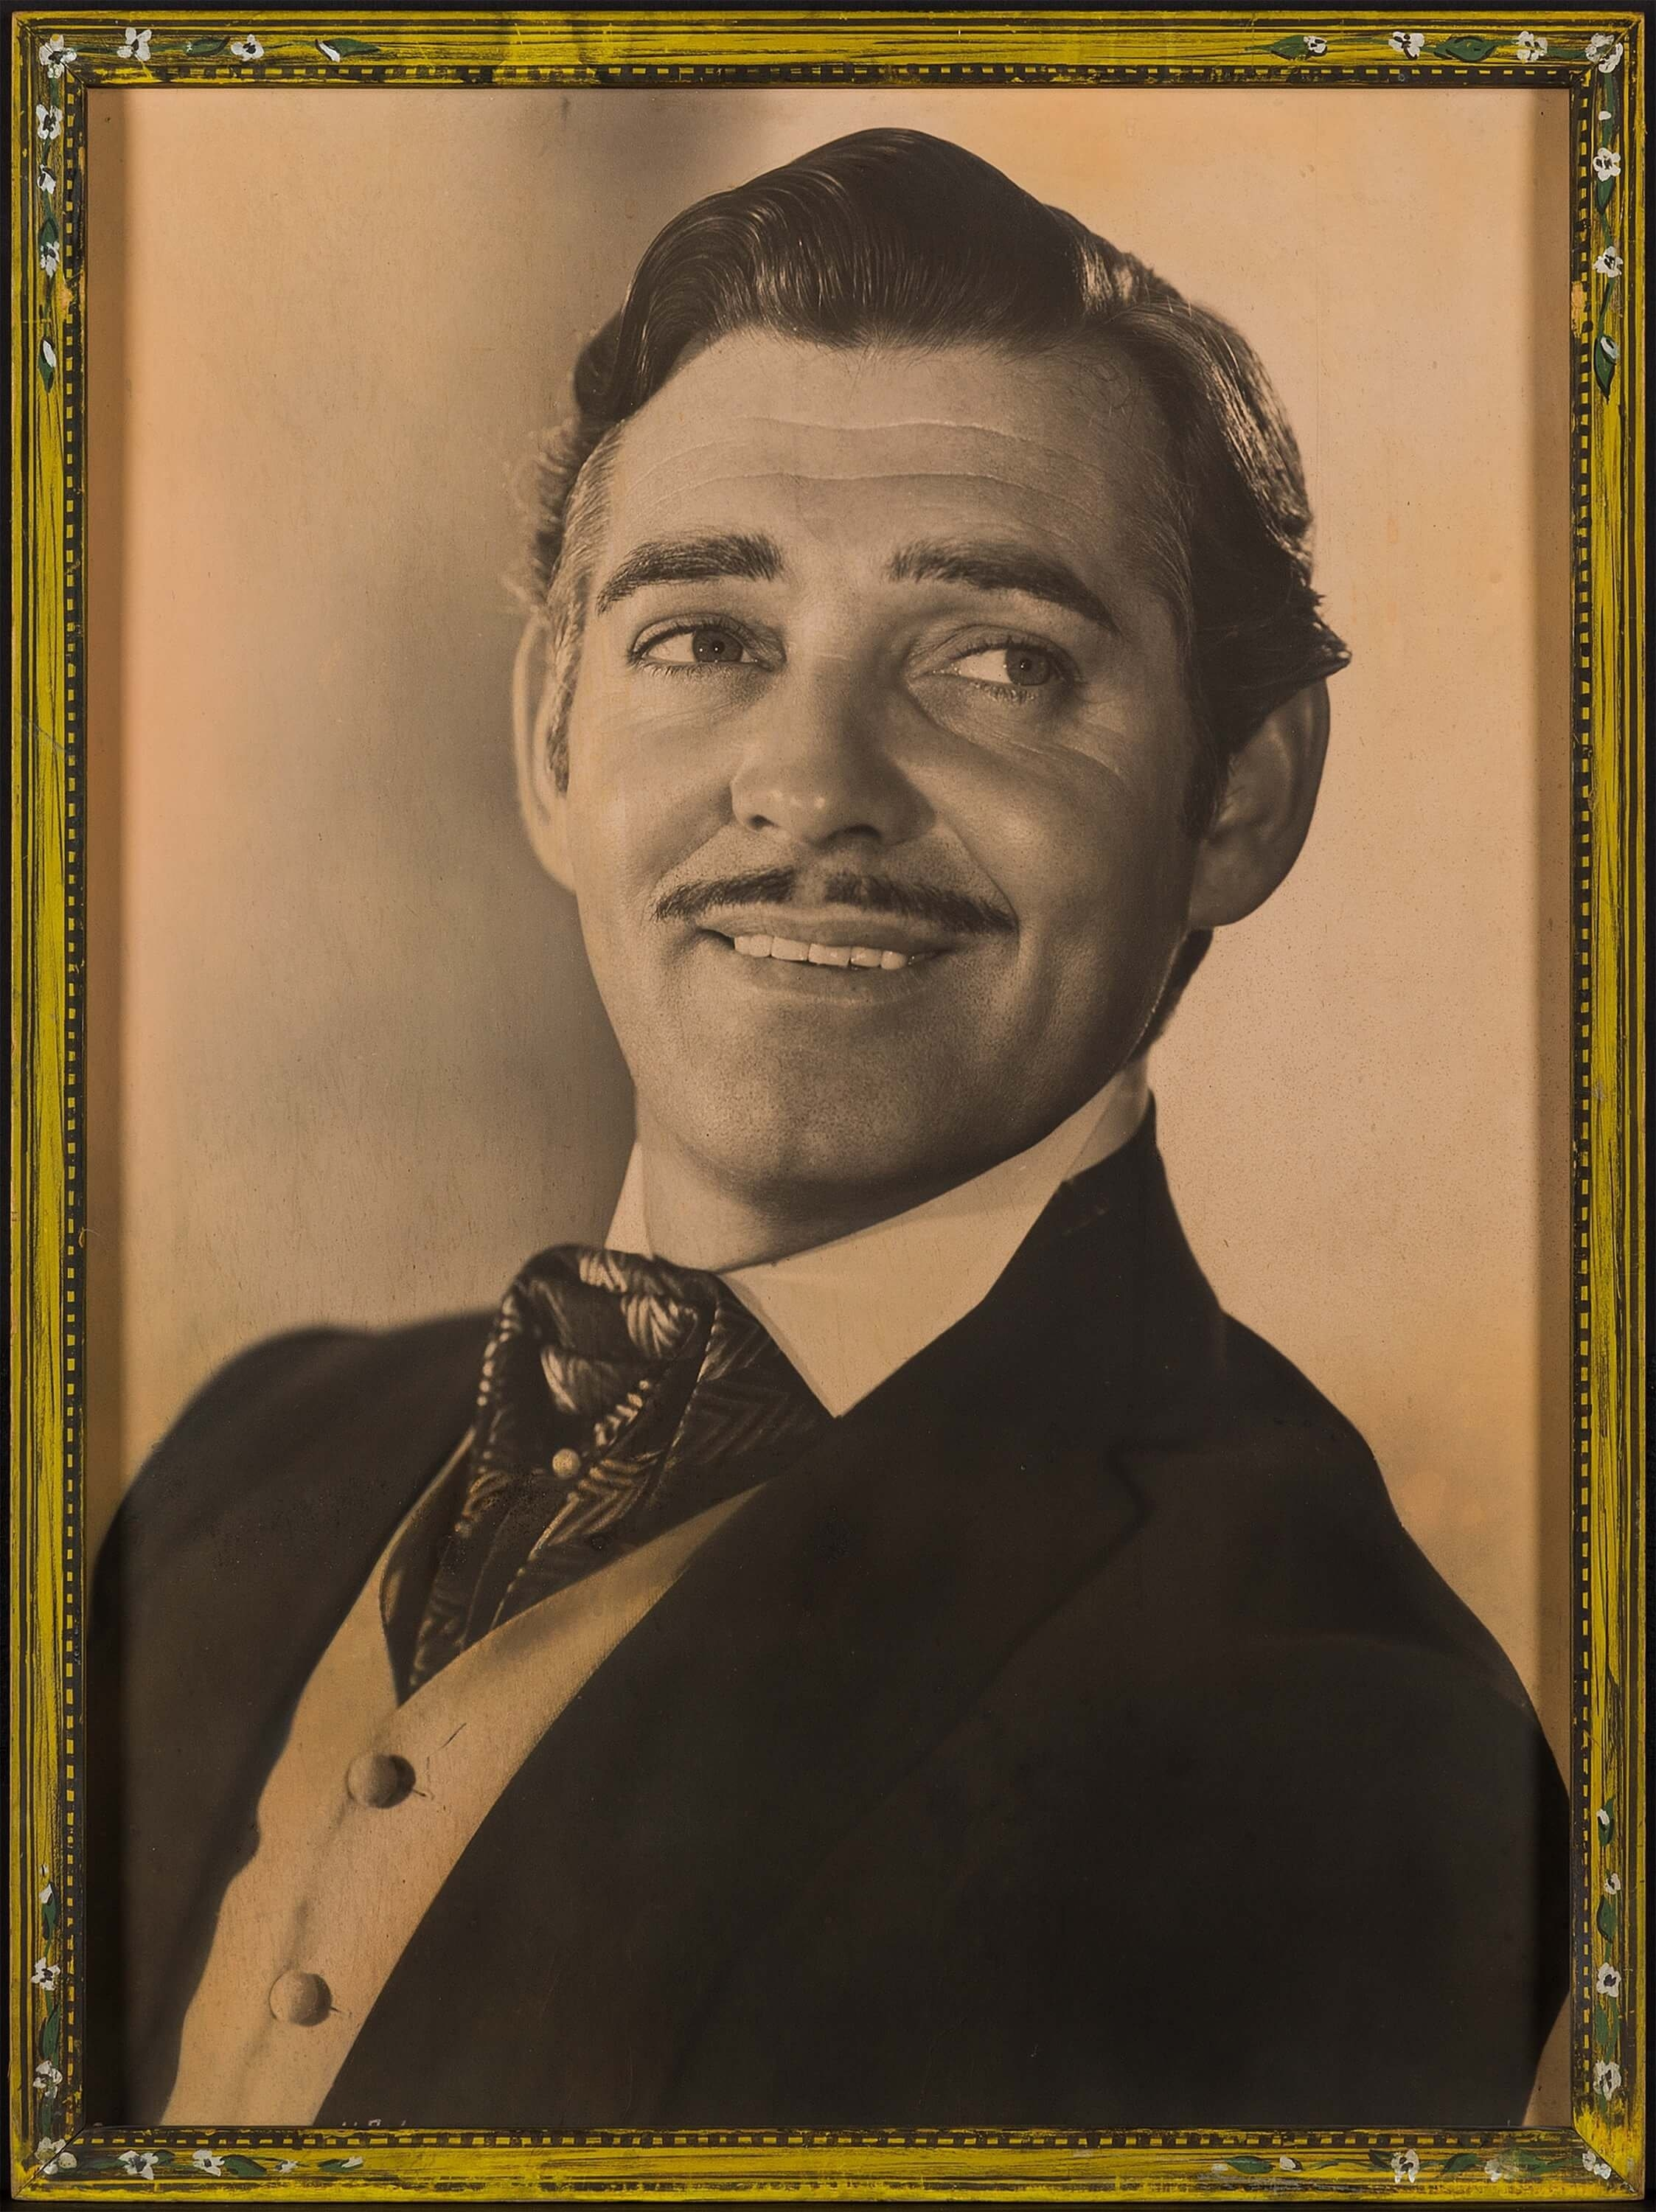 A Clark Gable oversized lobby portrait for Gone with the Wind - Image 2 of 2